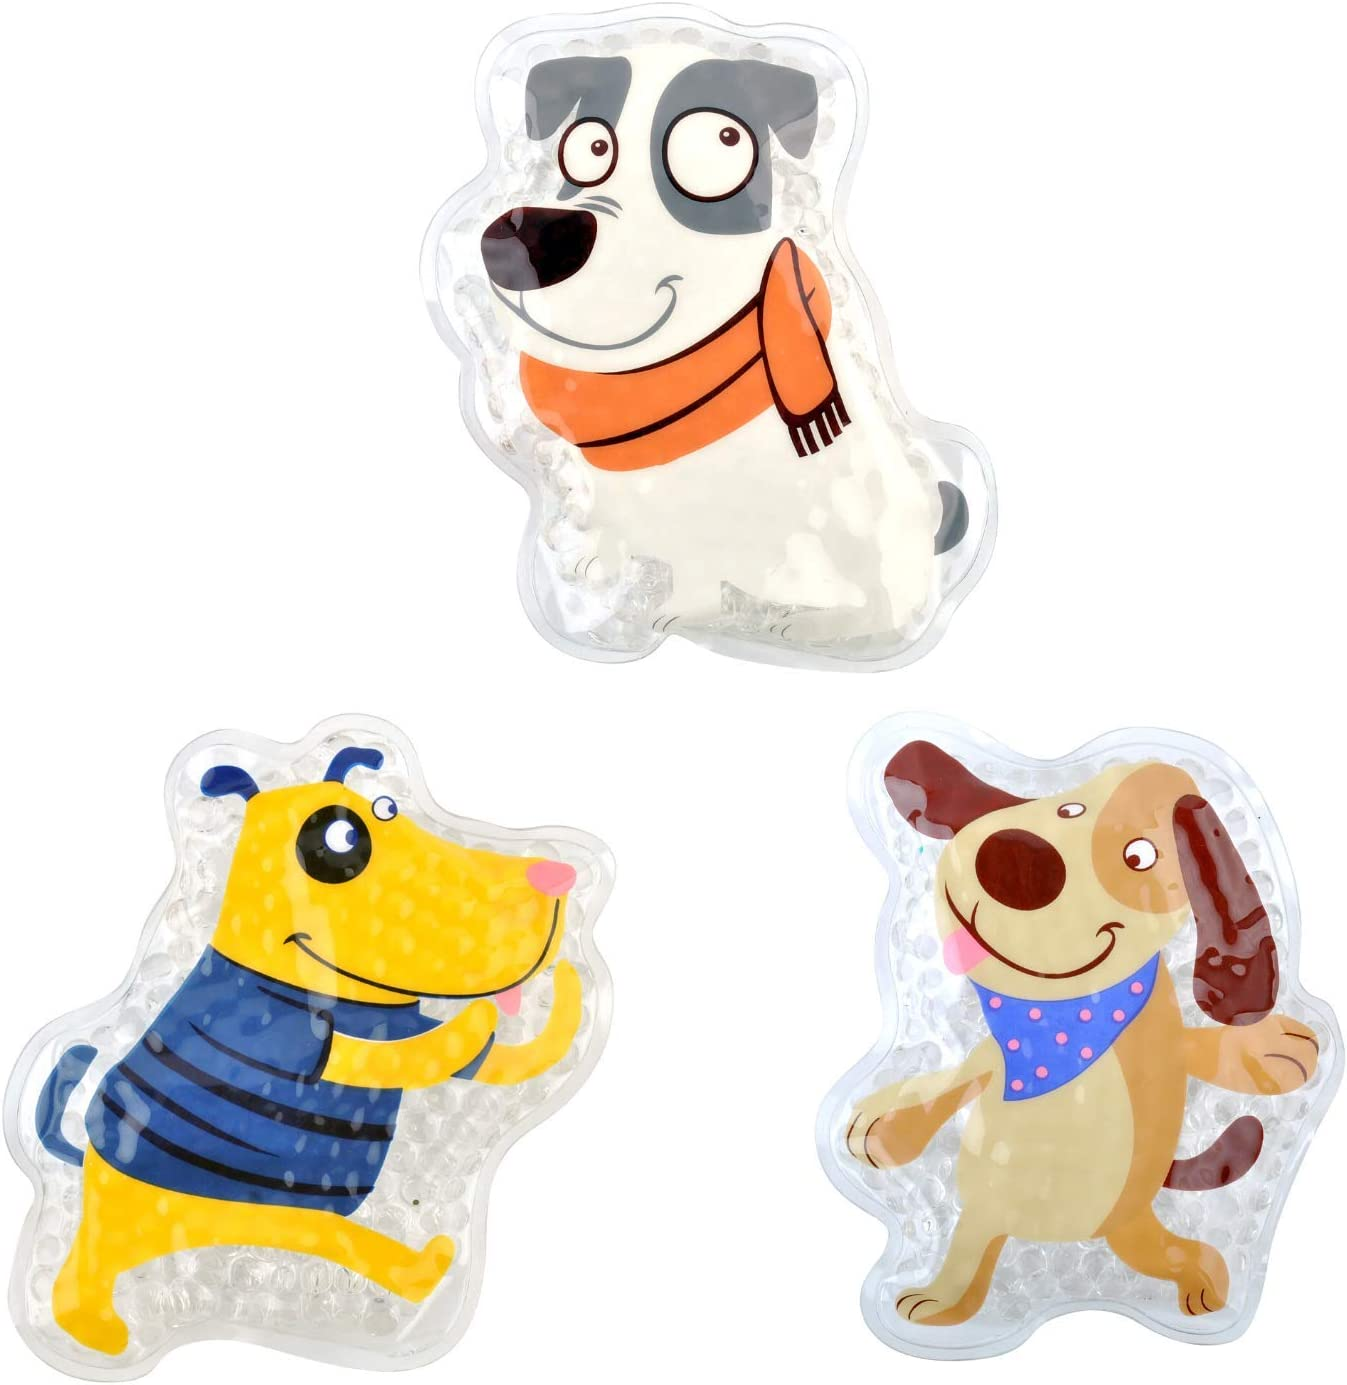 FOMI Kids Fun Pain Relieving Hot OFFicial Ice All items free shipping Boo 3-Pack Cold Packs. Boos